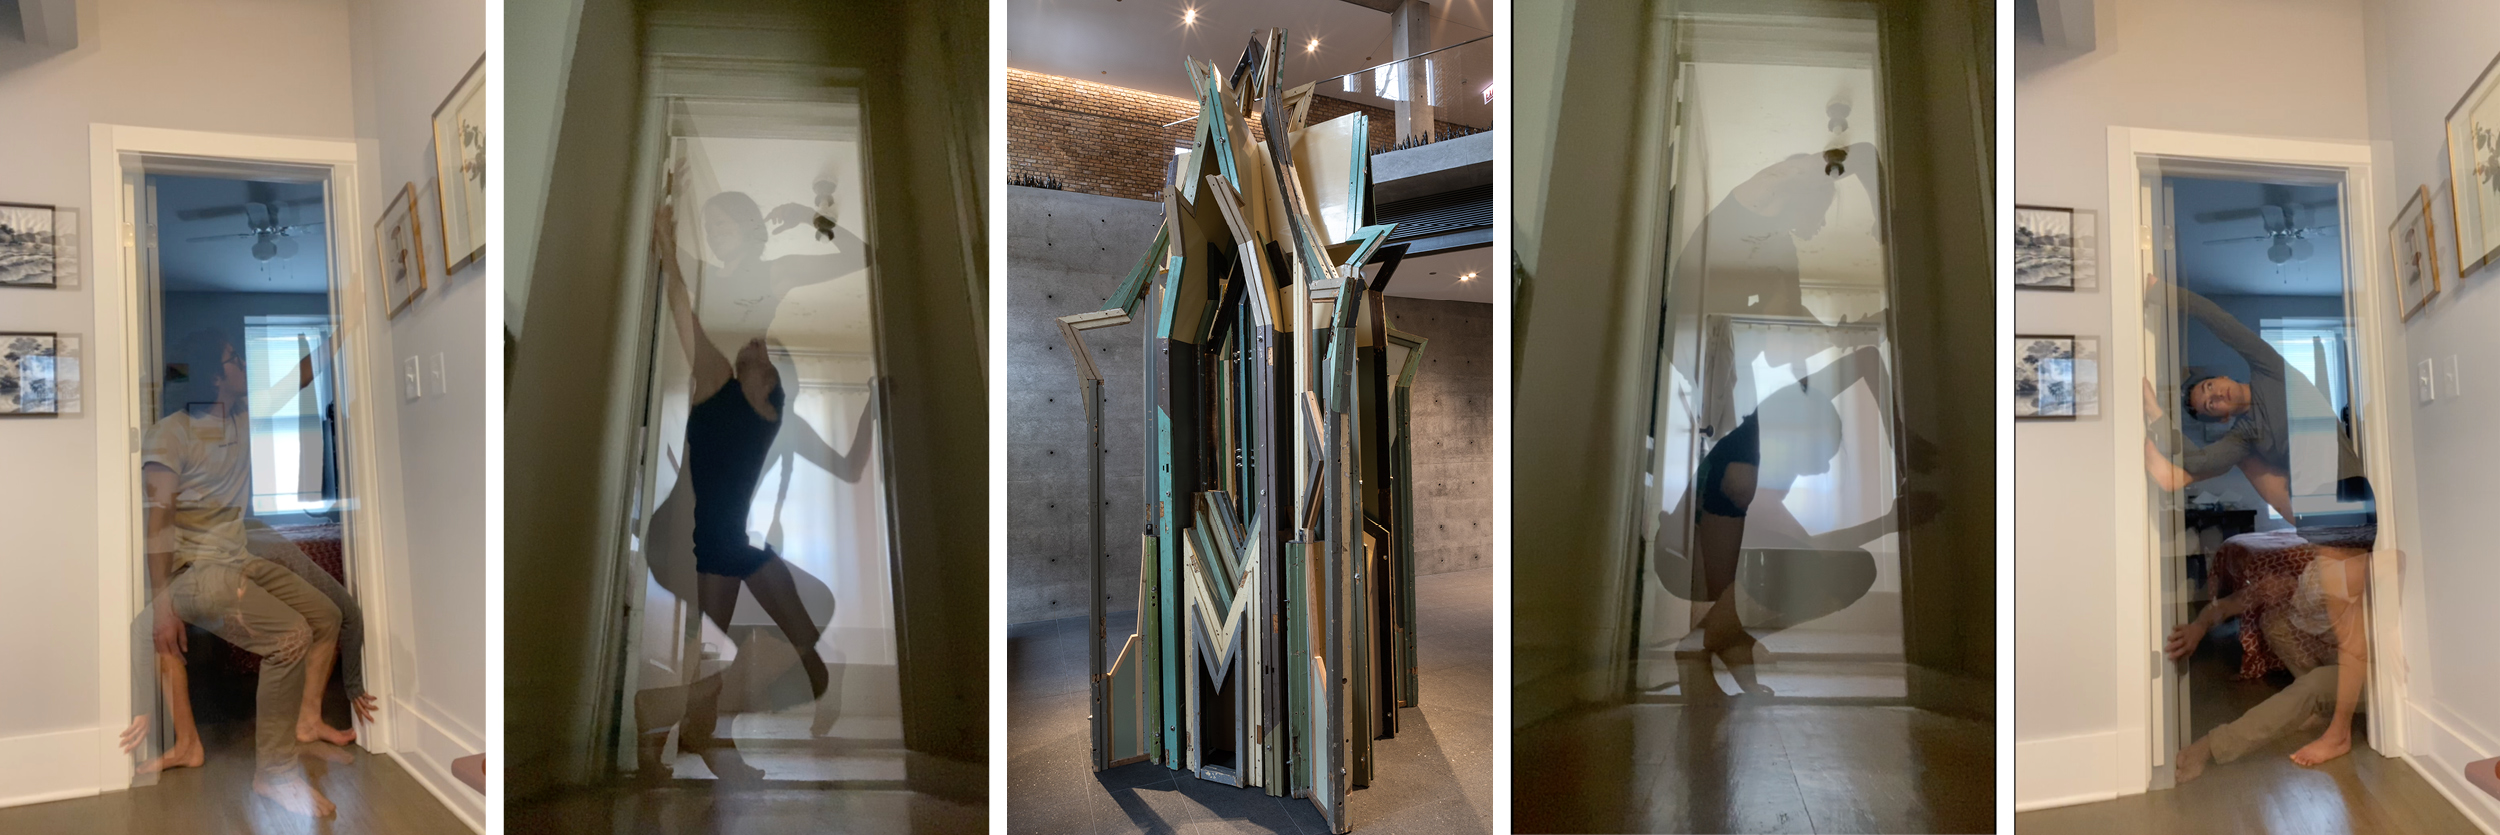 Image collage of movement studies for Merely a Mistake: A Score for Your Door with Liu Wei, Merely a Mistake II No. 7, 2009–11.